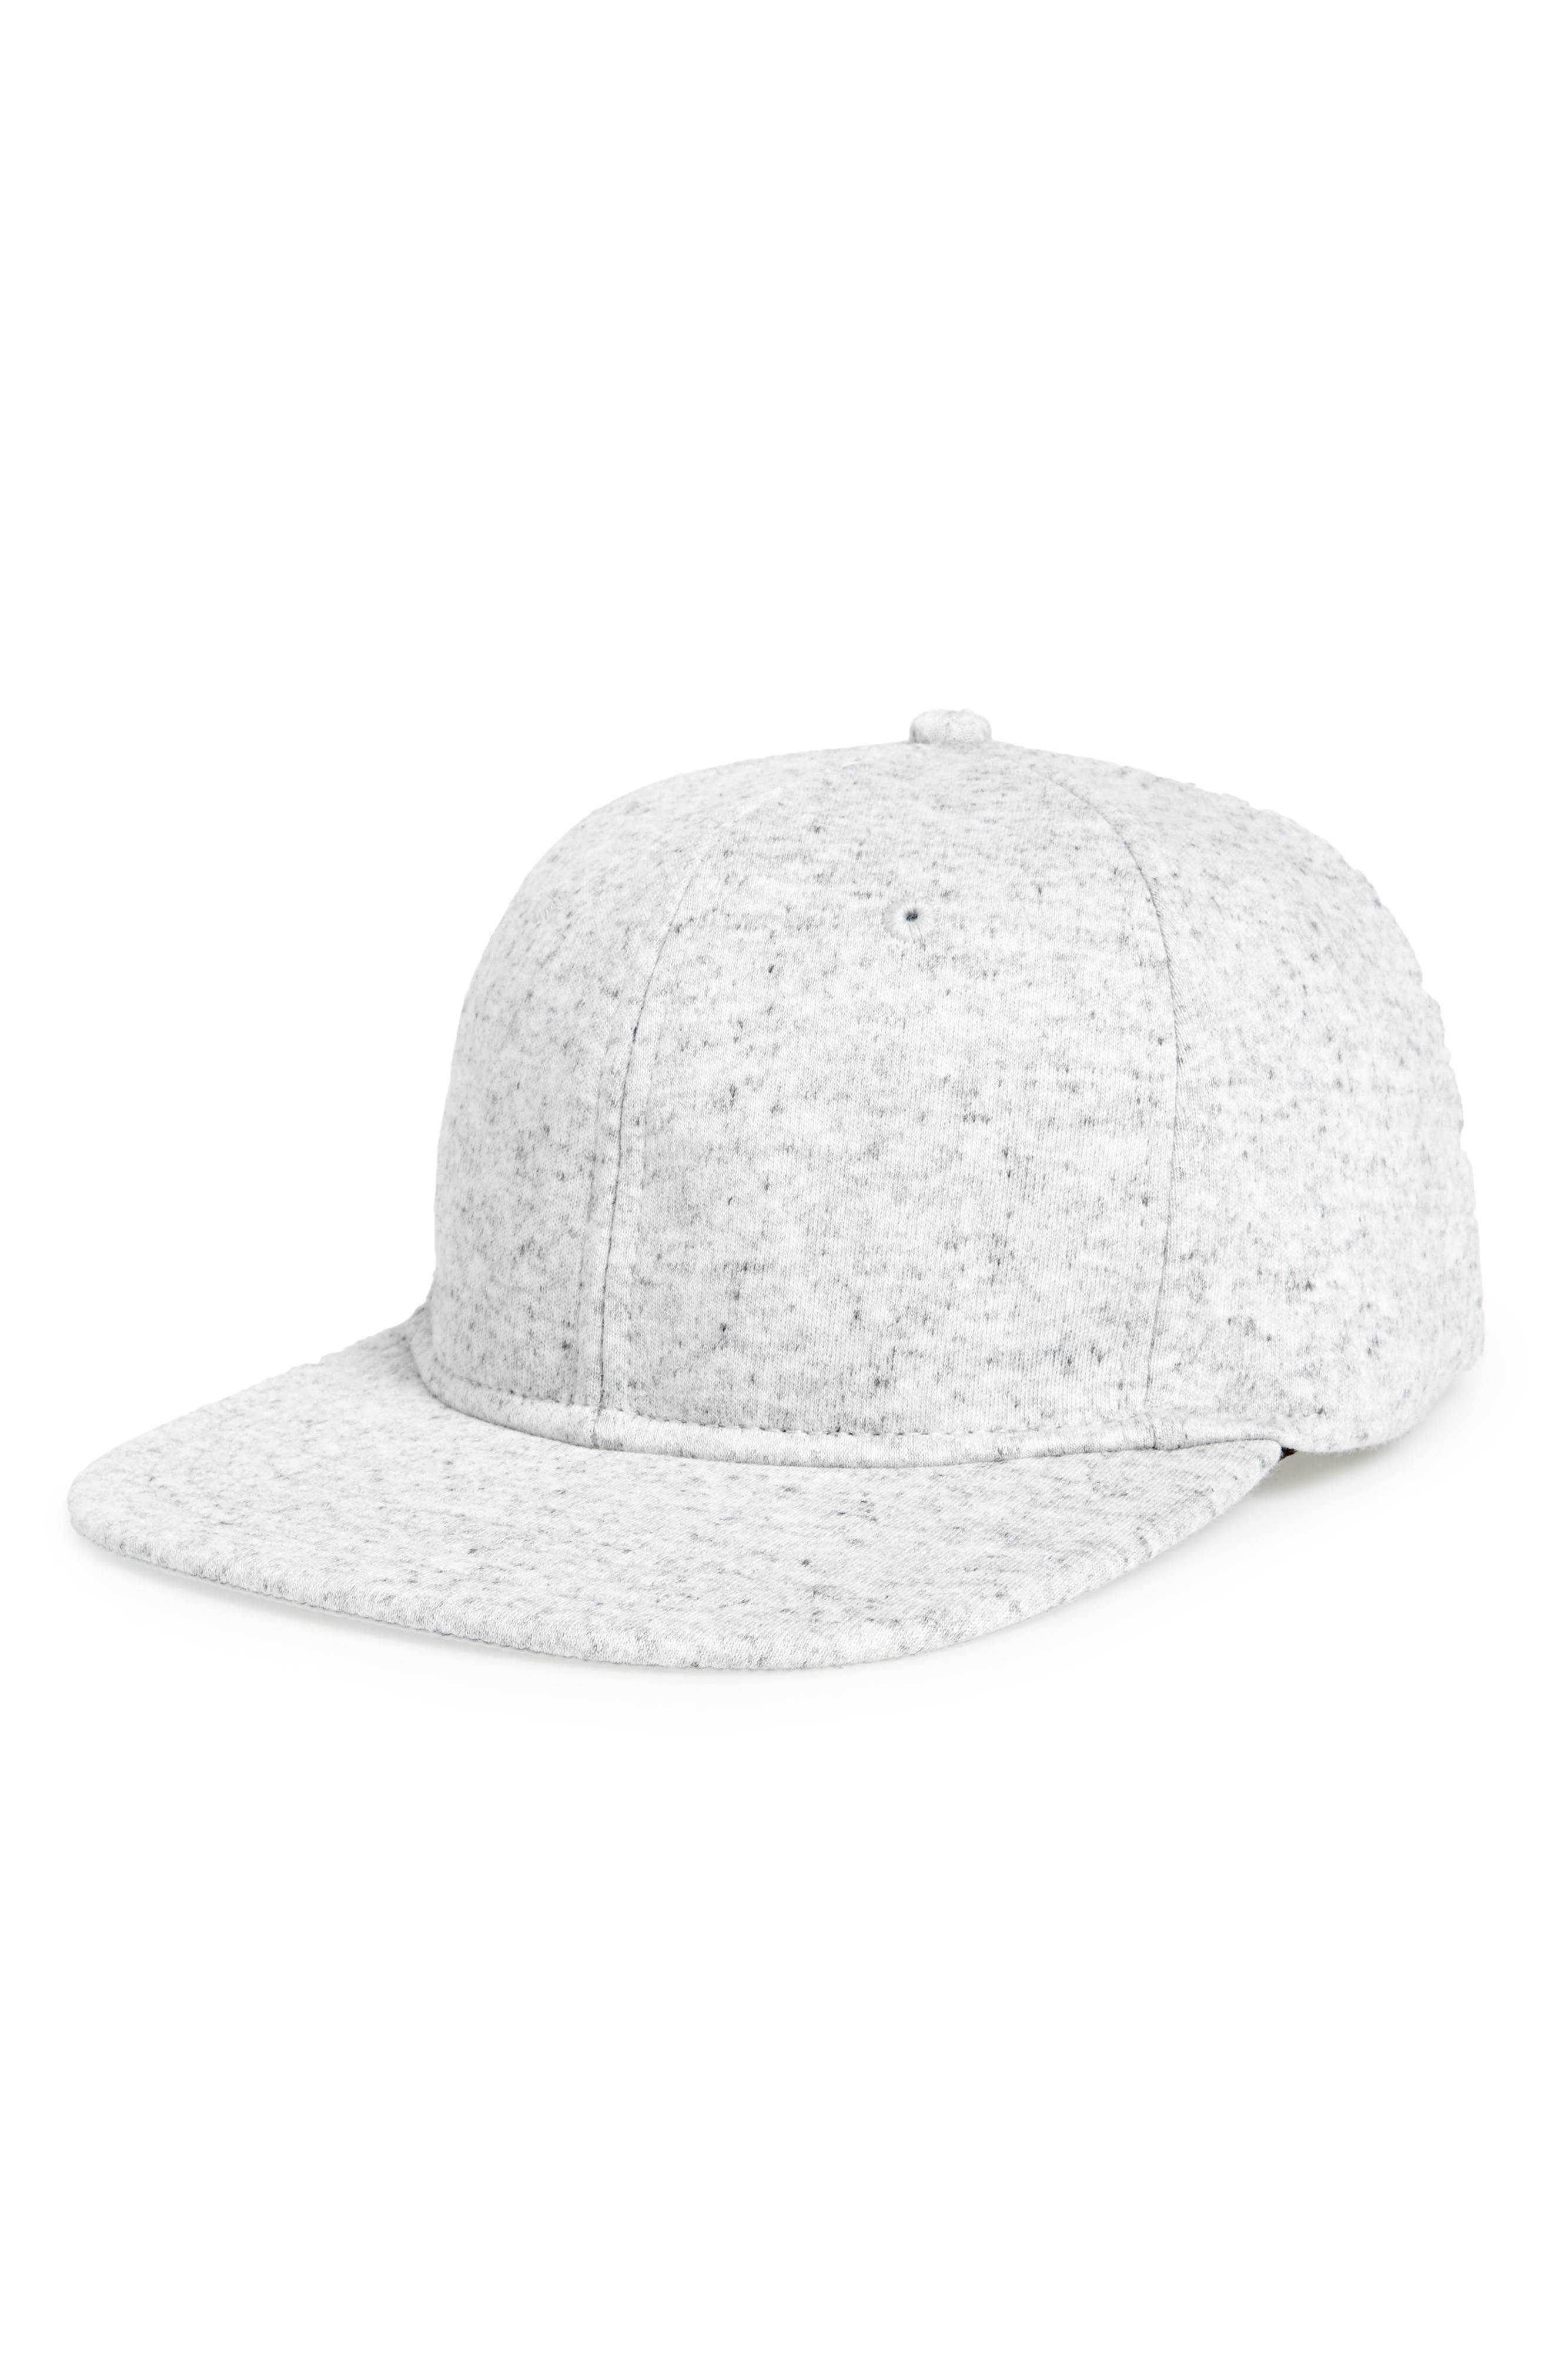 Alternate Image 1 Selected - Reigning Champ Terry Ball Cap